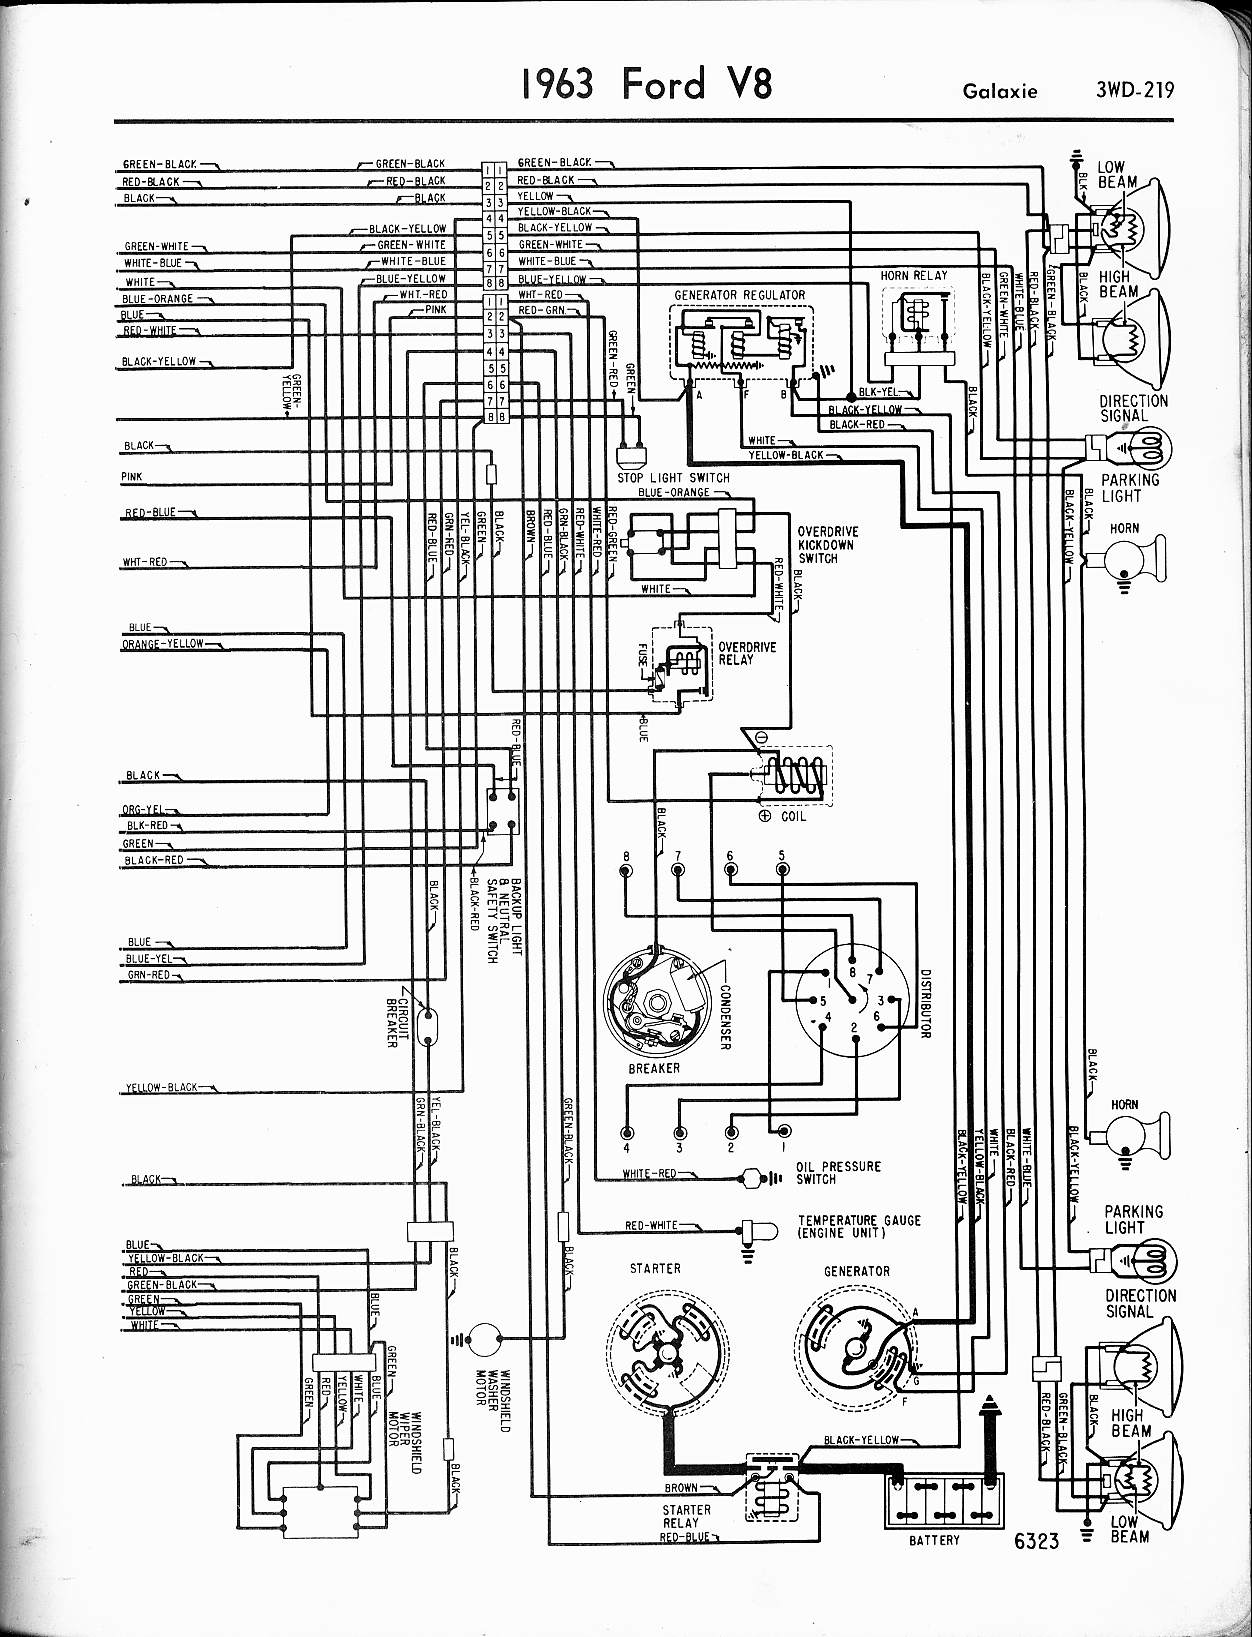 63 falcon fuse box schematics wiring diagrams u2022 rh seniorlivinguniversity co 1965 F100 Horn Diagram Ford Ignition Switch Diagram